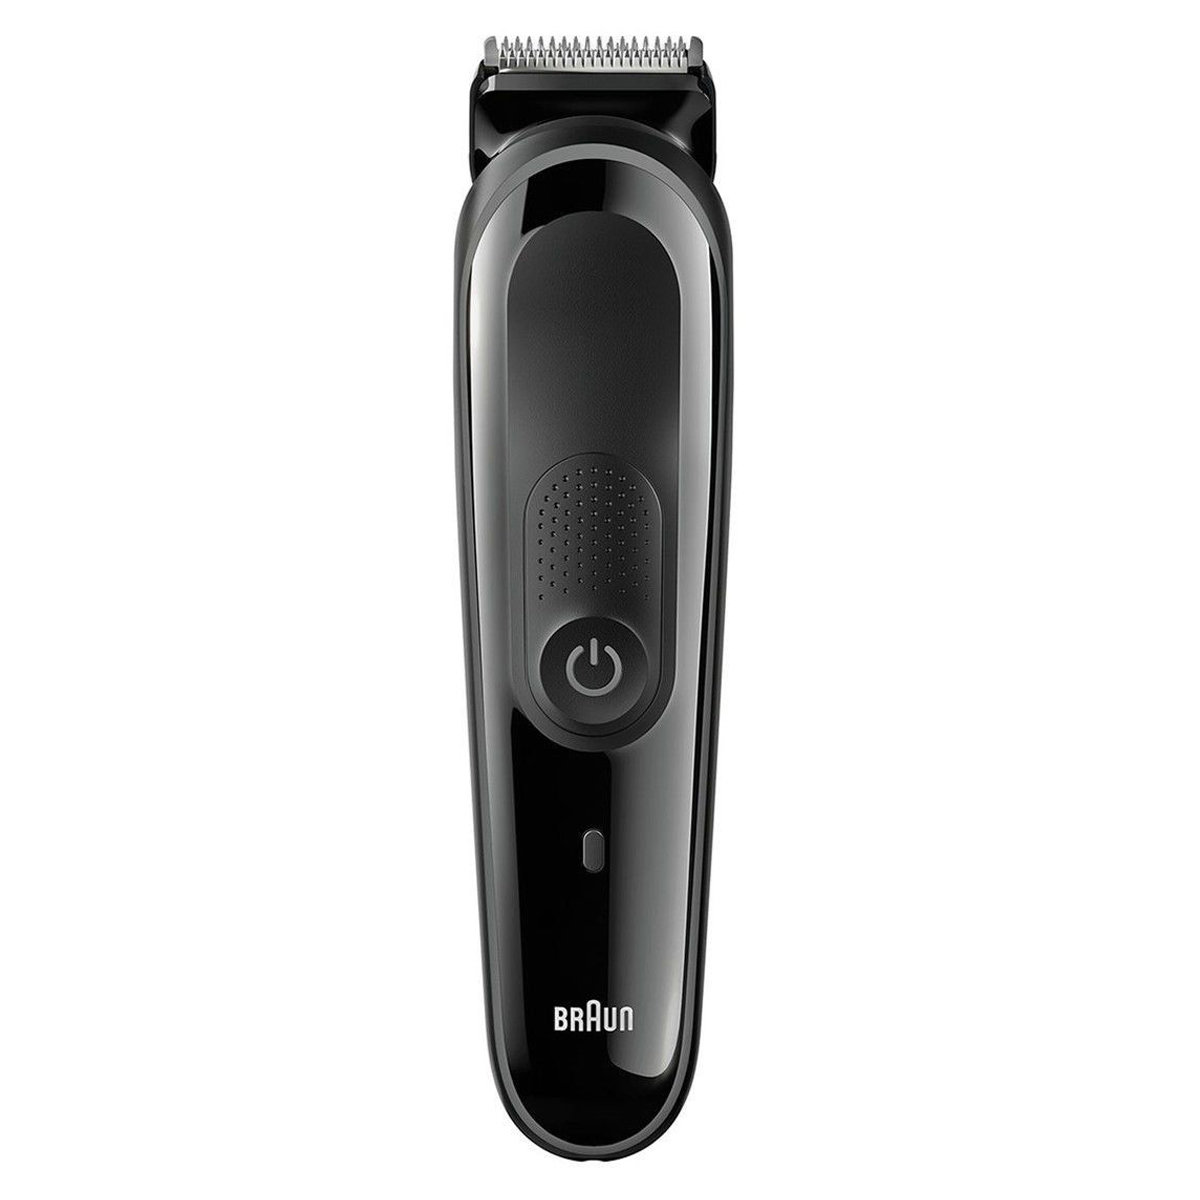 Fusion Pro Braun 3060mgk 8 In 1 Grooming Kit With Gillette Fusion Pro Glide Manual Razor